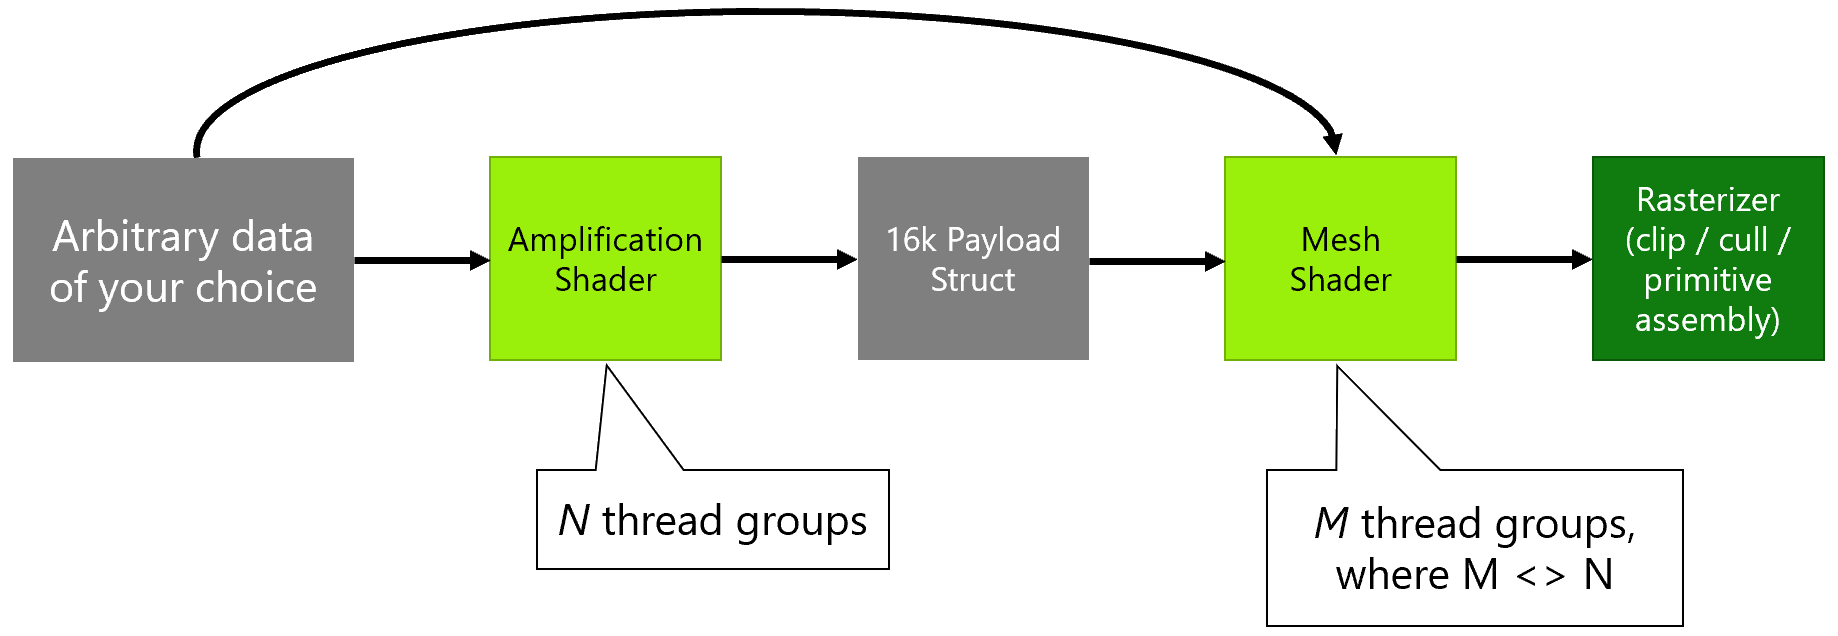 Announcing DirectX 12 Ultimate amplification_shader.png